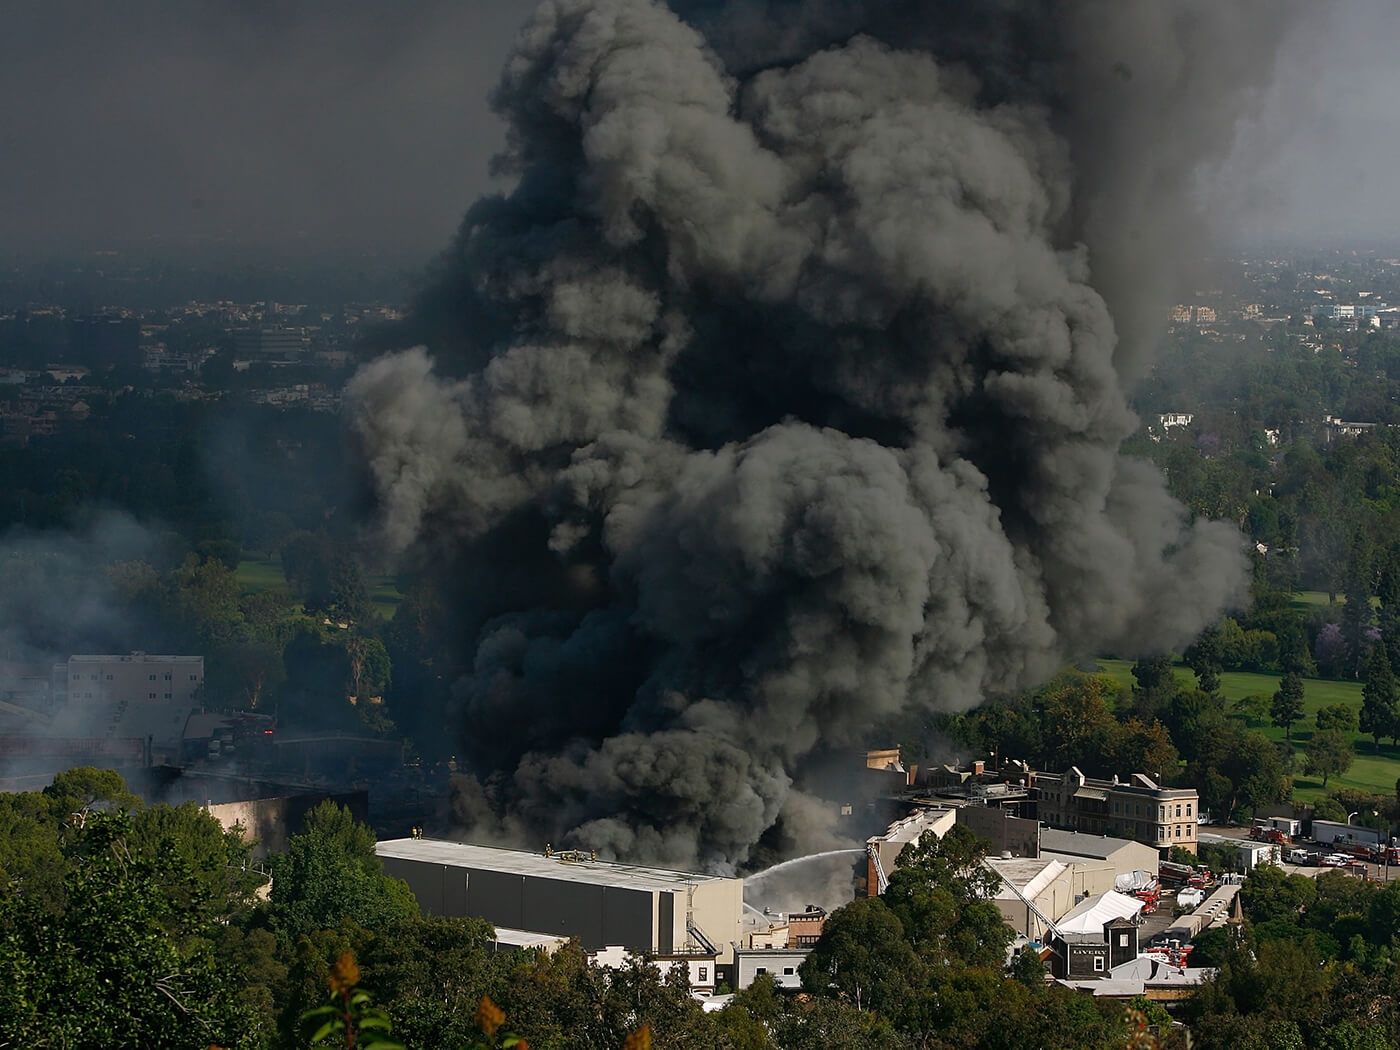 UMG fire in 2008 may have wiped out 500,000 master recordings